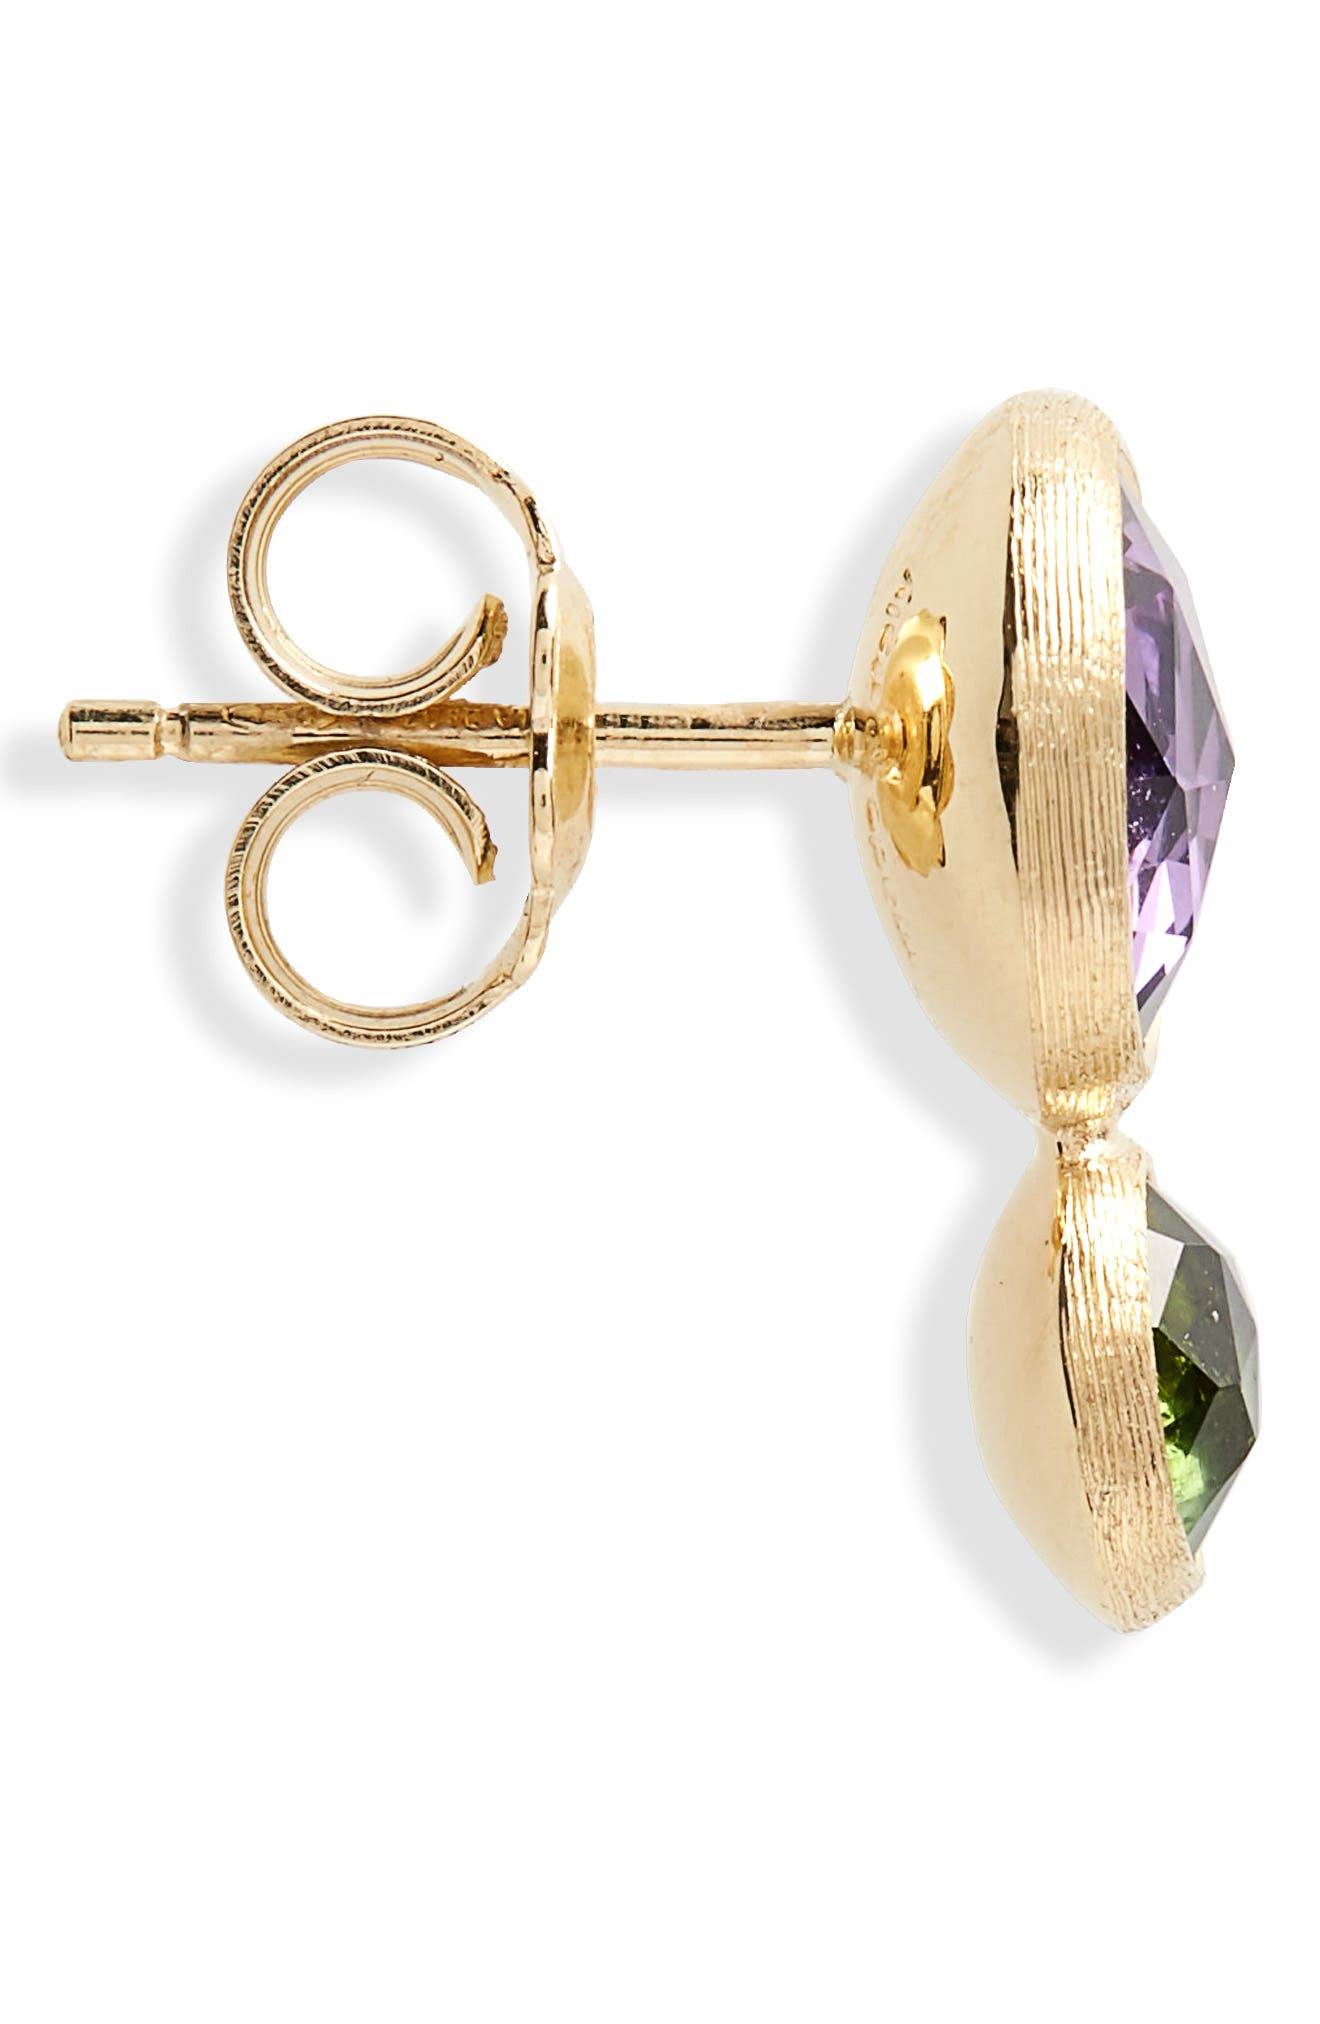 Jaipur Amethyst & Tourmaline Stud Earrings,                             Alternate thumbnail 4, color,                             Yello Gold/ Amethyst